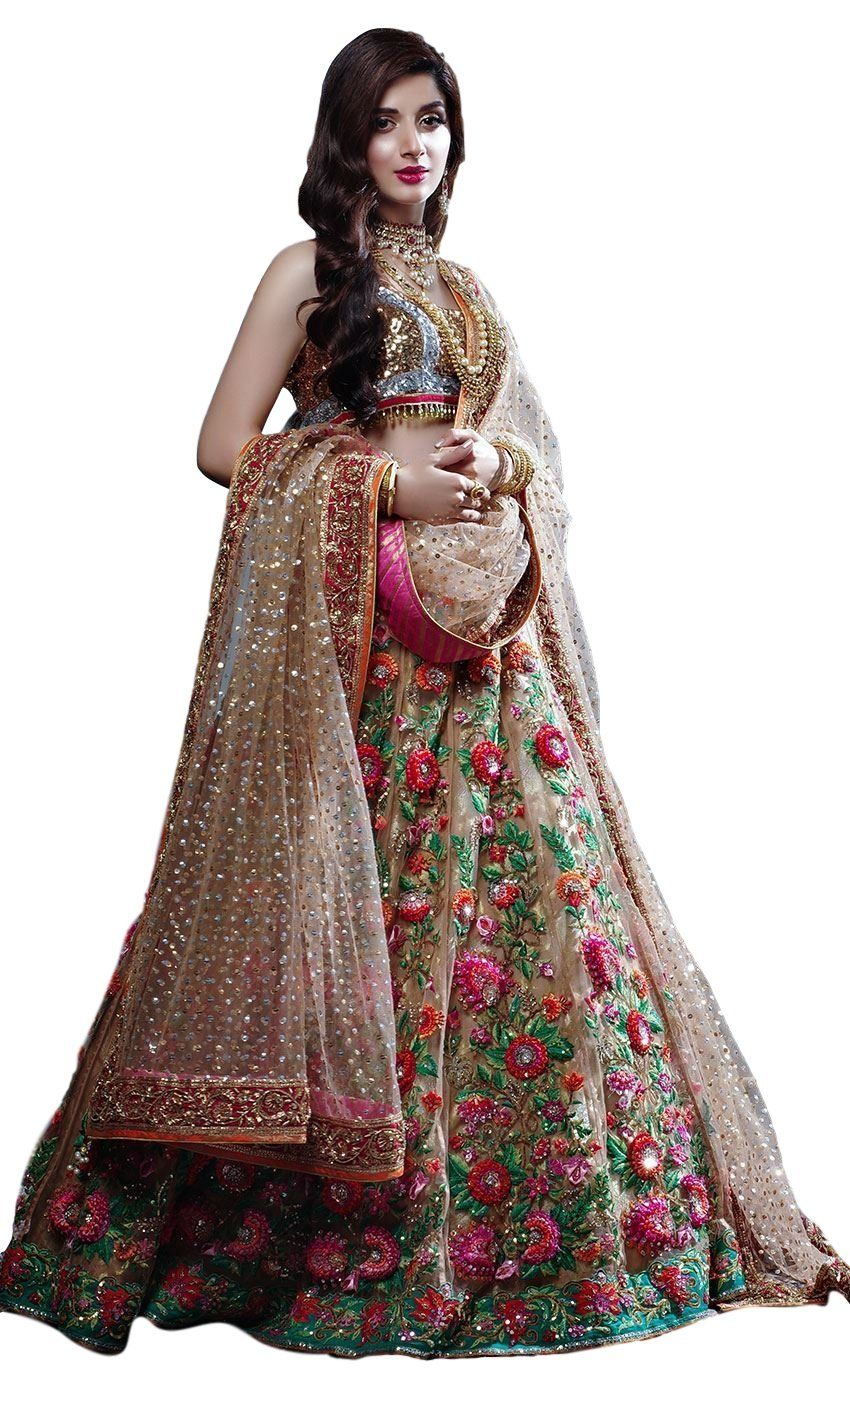 Casual wedding dresses with color  Fawn Color Wedding Lehenga with Floral Embroidery  choker